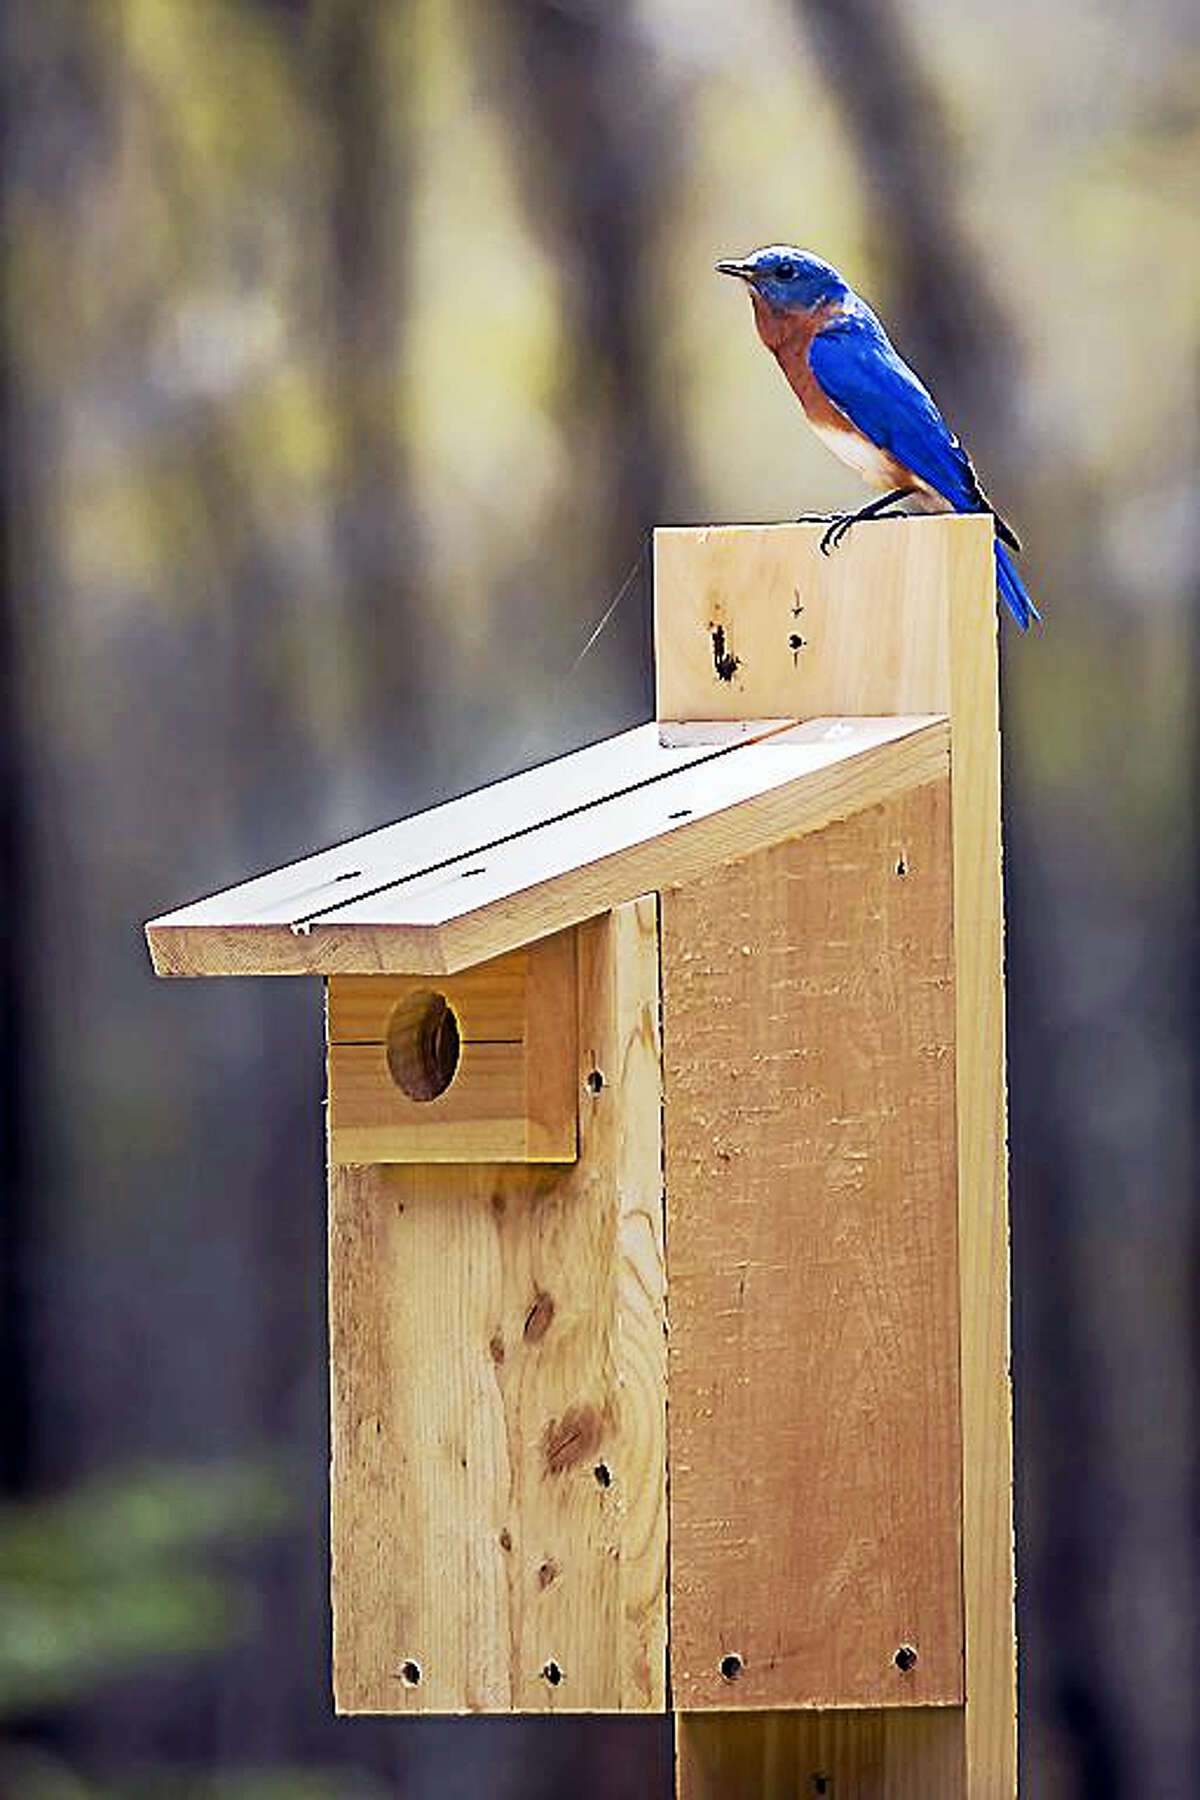 Learn to build a bluebird nesting box at a workshop at Flanders Nature Center in Woodbury on Saturday, Feb. 11.